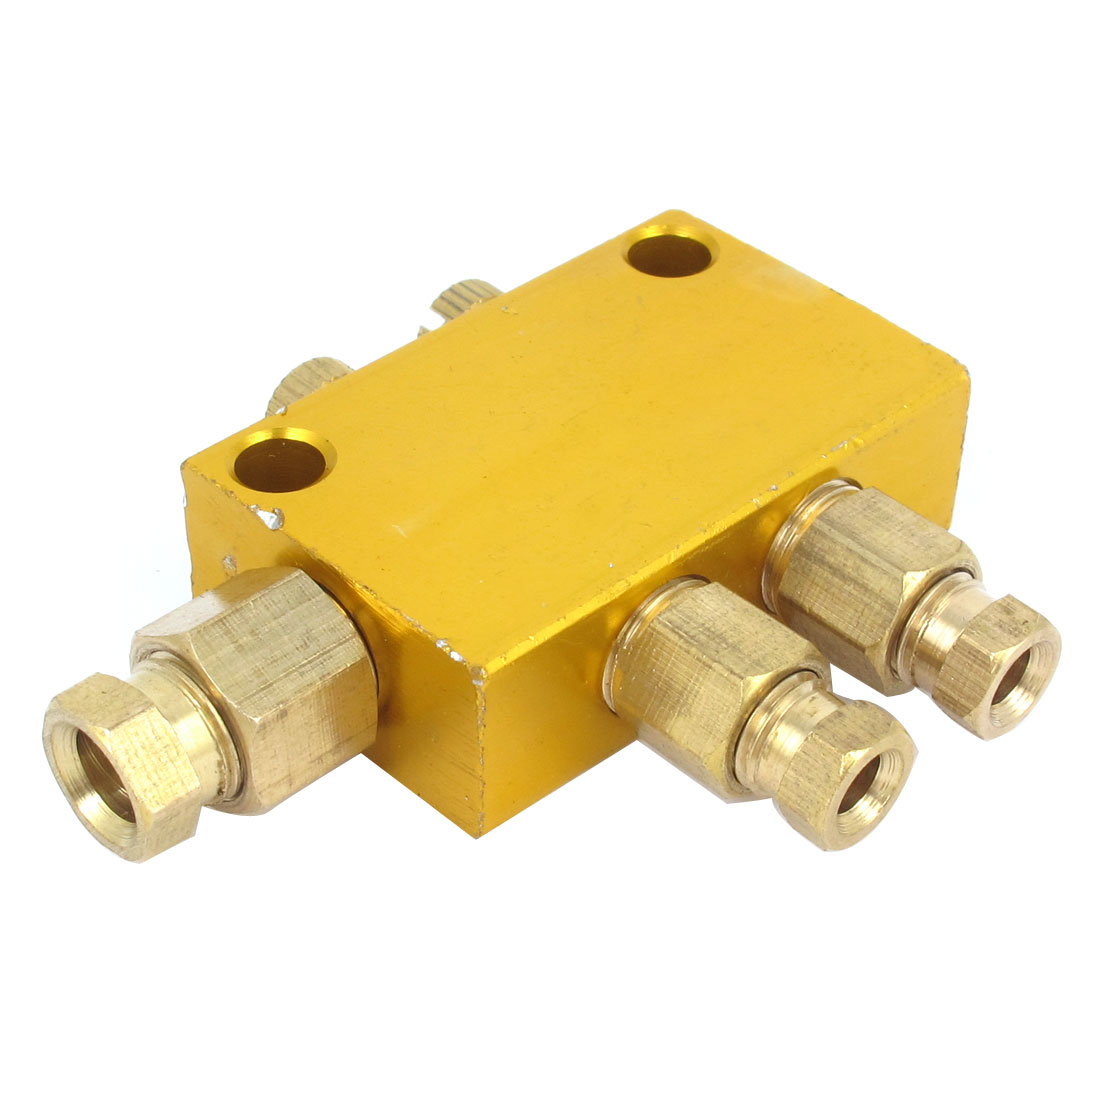 Air Pneumatic 10mm Inlet 8mm Outlet 2 Ways Brass Adjustable Hydraulic Oil Distributor Regulating Manifold Block